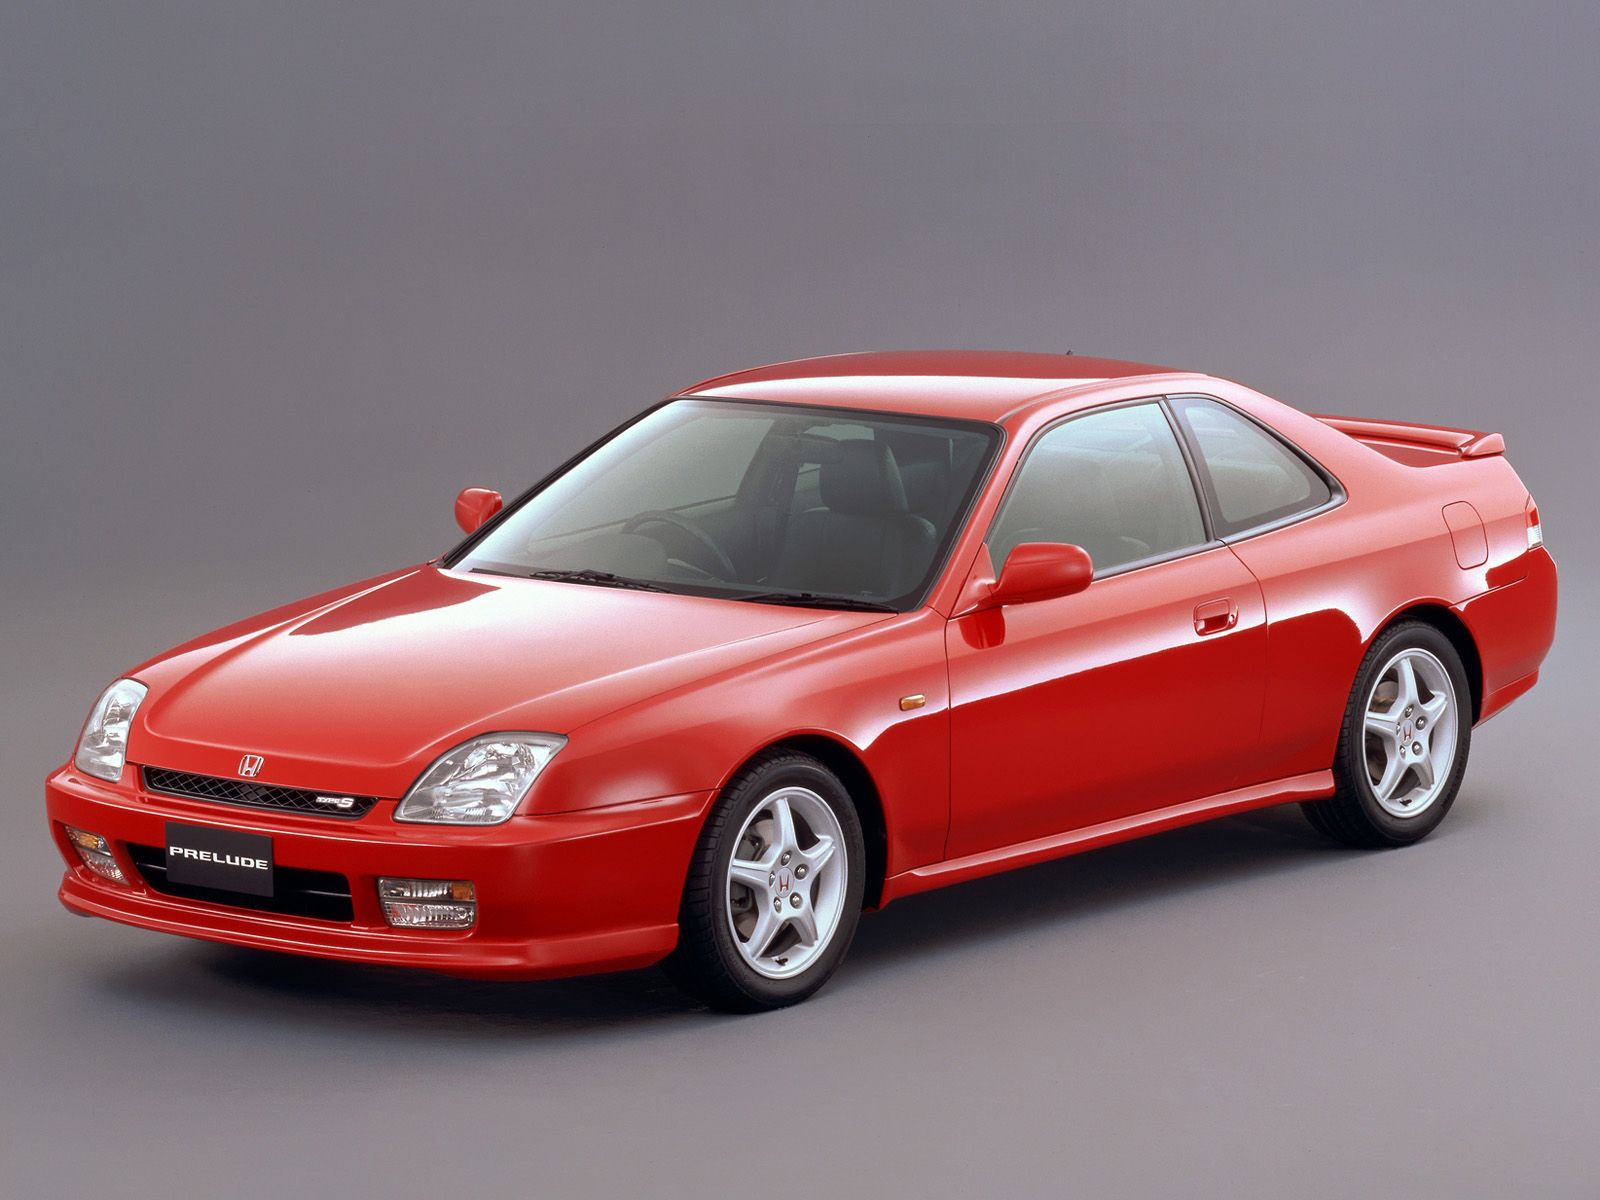 2e1e3065e8e9ff3462bccc7d83738247 Interesting Info About 2000 Honda Prelude